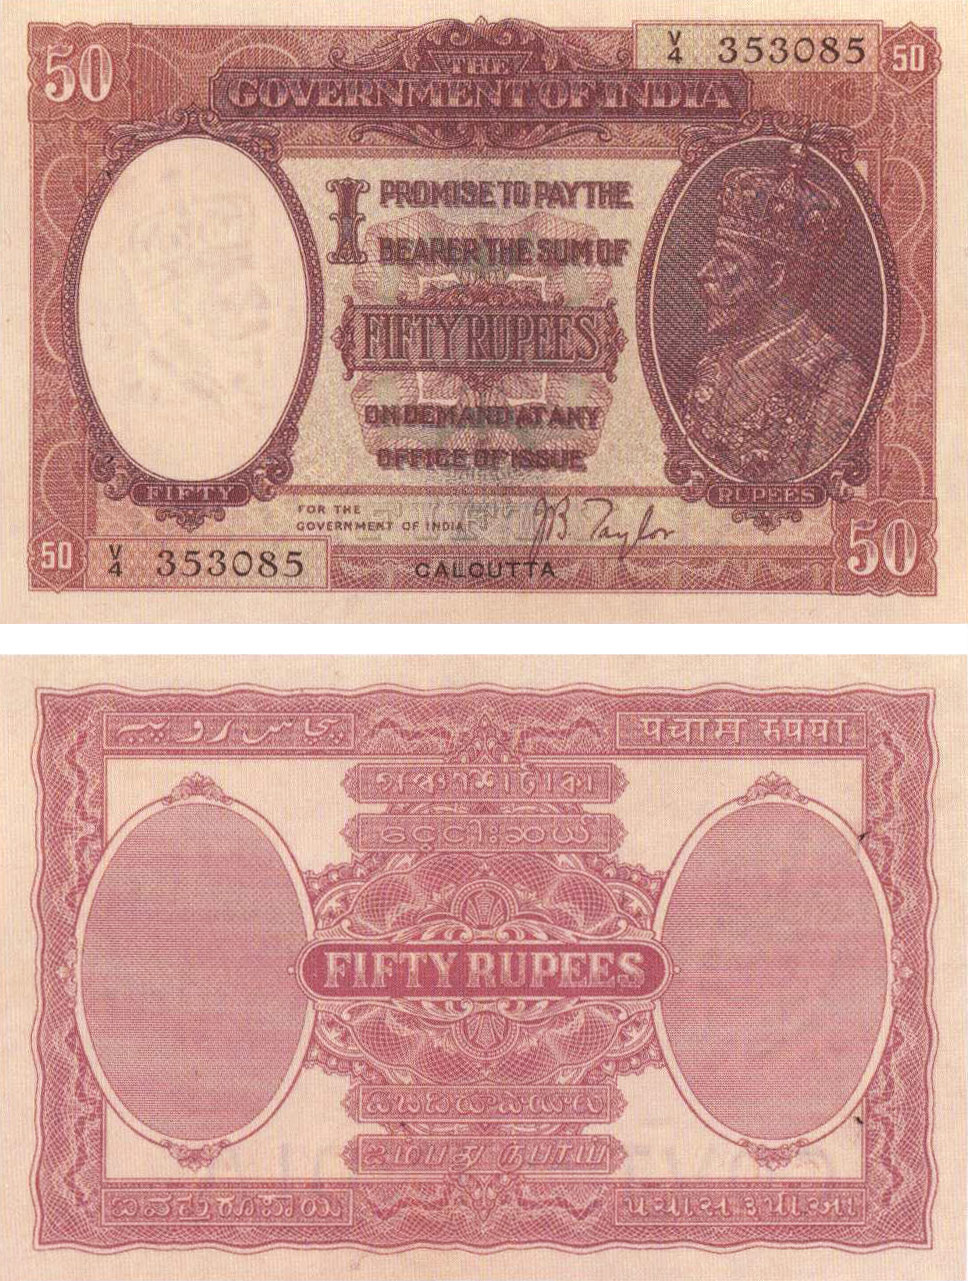 50 Rus 1930 Government Of India Banknote For Burma Signed By J B Taylor